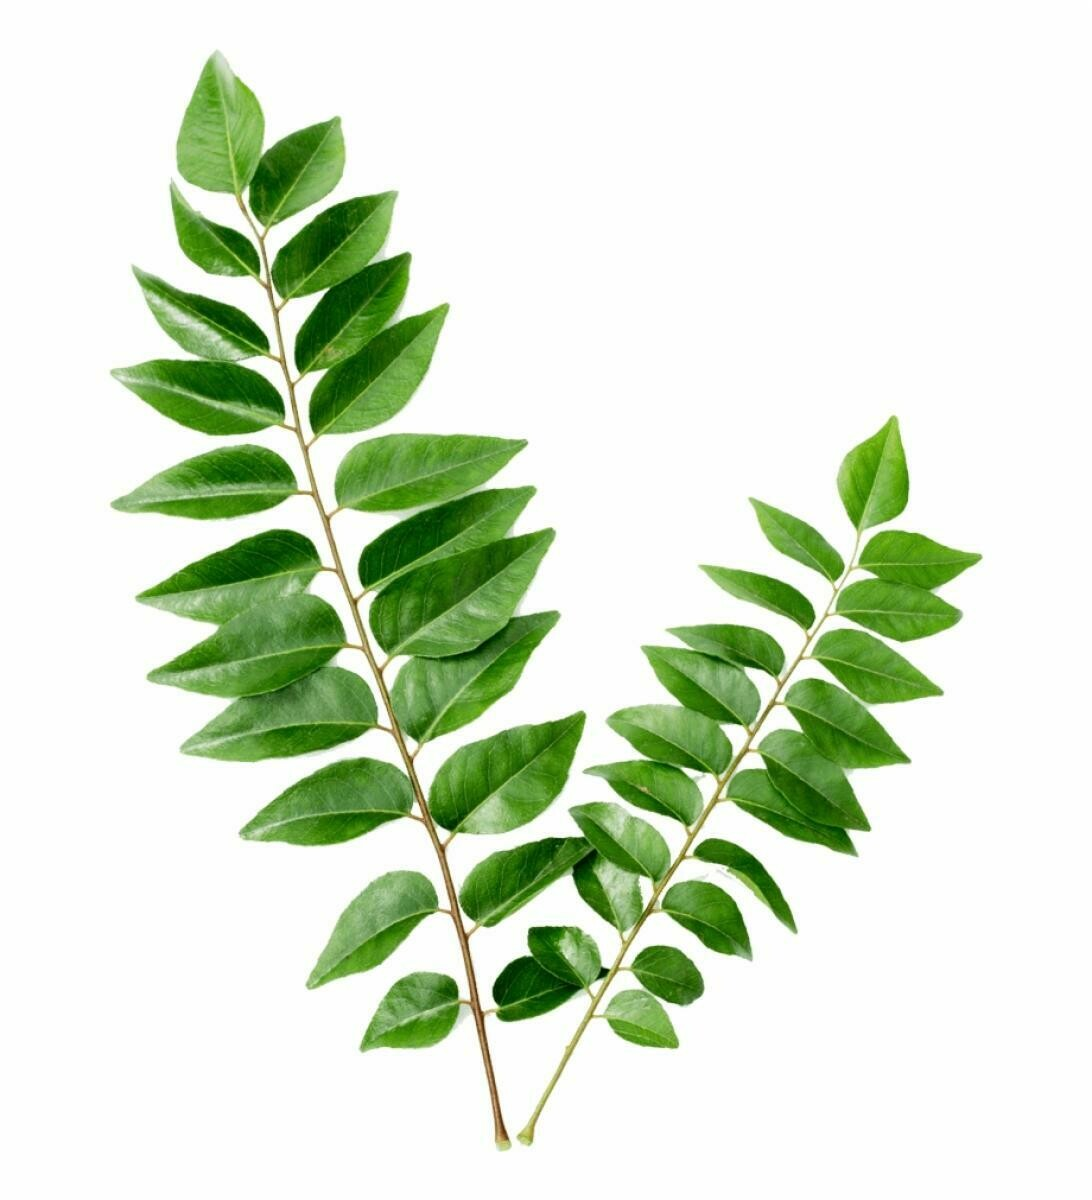 Curry Leaf Tree - Murraya koenigii